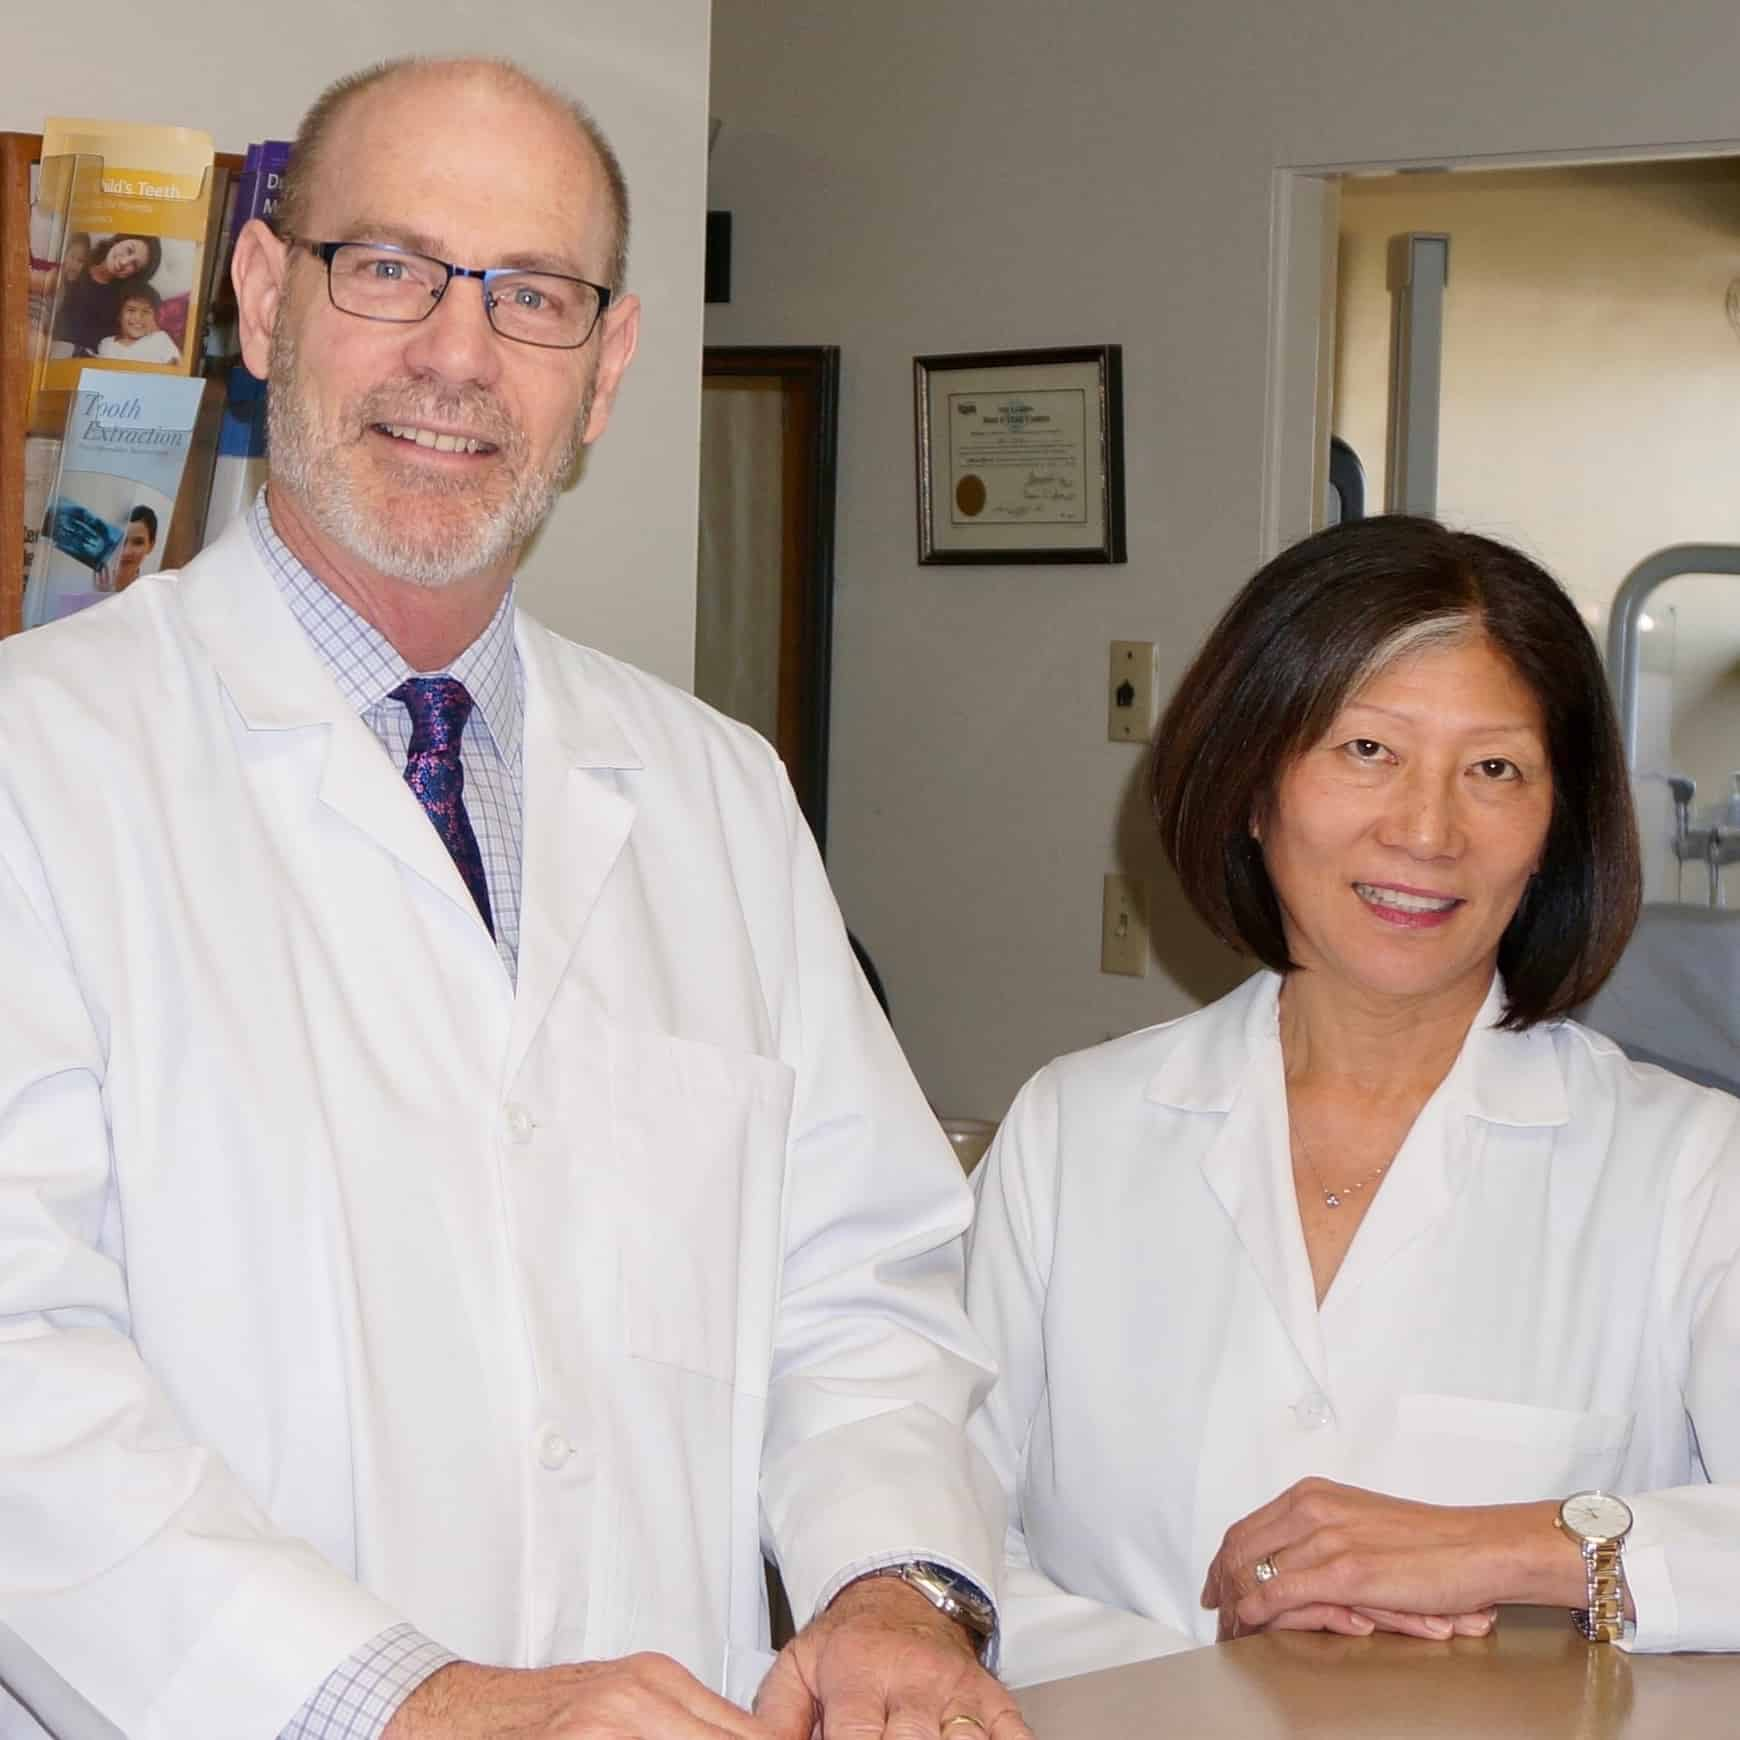 Dentists at Palo Alto Oral Health